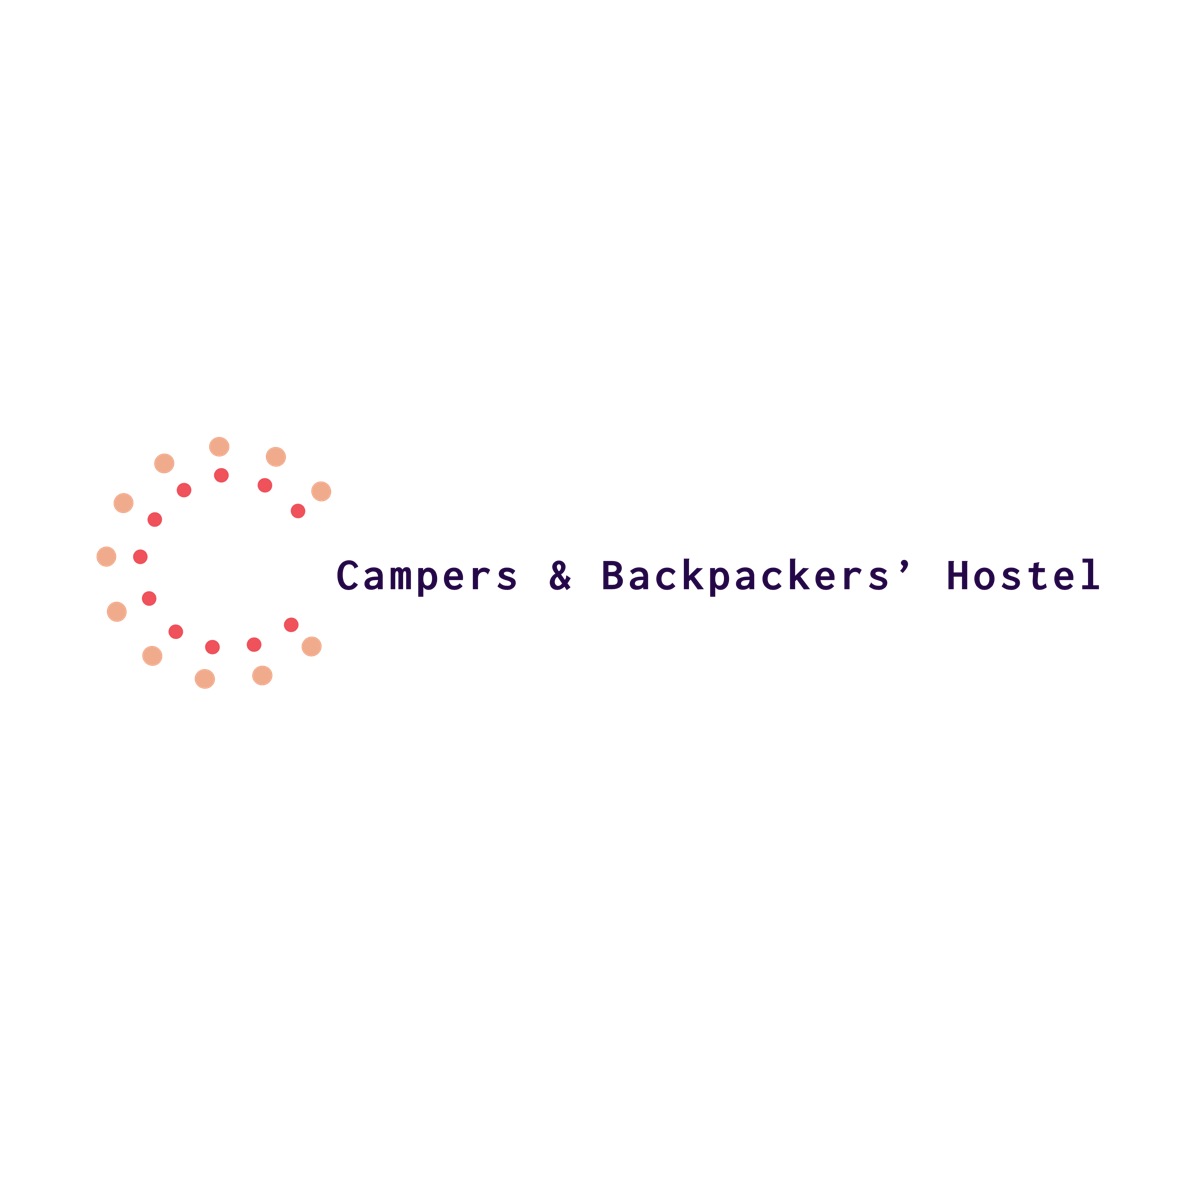 Campers And Backpackers Hostel